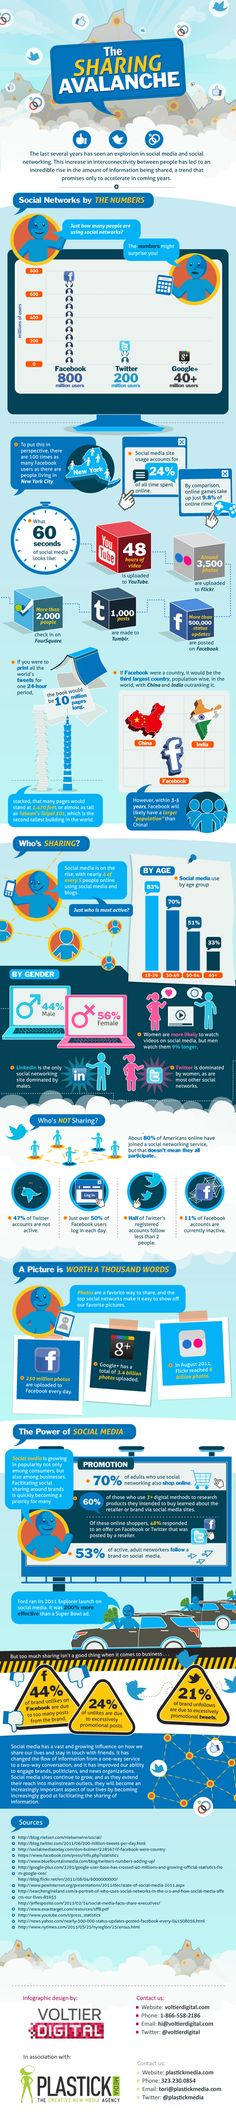 When you look at the staggering numbers on this infographic, it really puts into perspective how many people are on social media sites. However, I also think it's interesting that 47% of Twitter accounts aren't active and half of the registered Twitter accounts follow less than 2 people. Also, just over 50% of Facebook users log in each day. Can you believe that 250 million photos are uploaded to Facebook every day? That is a lot! Like I said, this puts a lot of things into perspective.